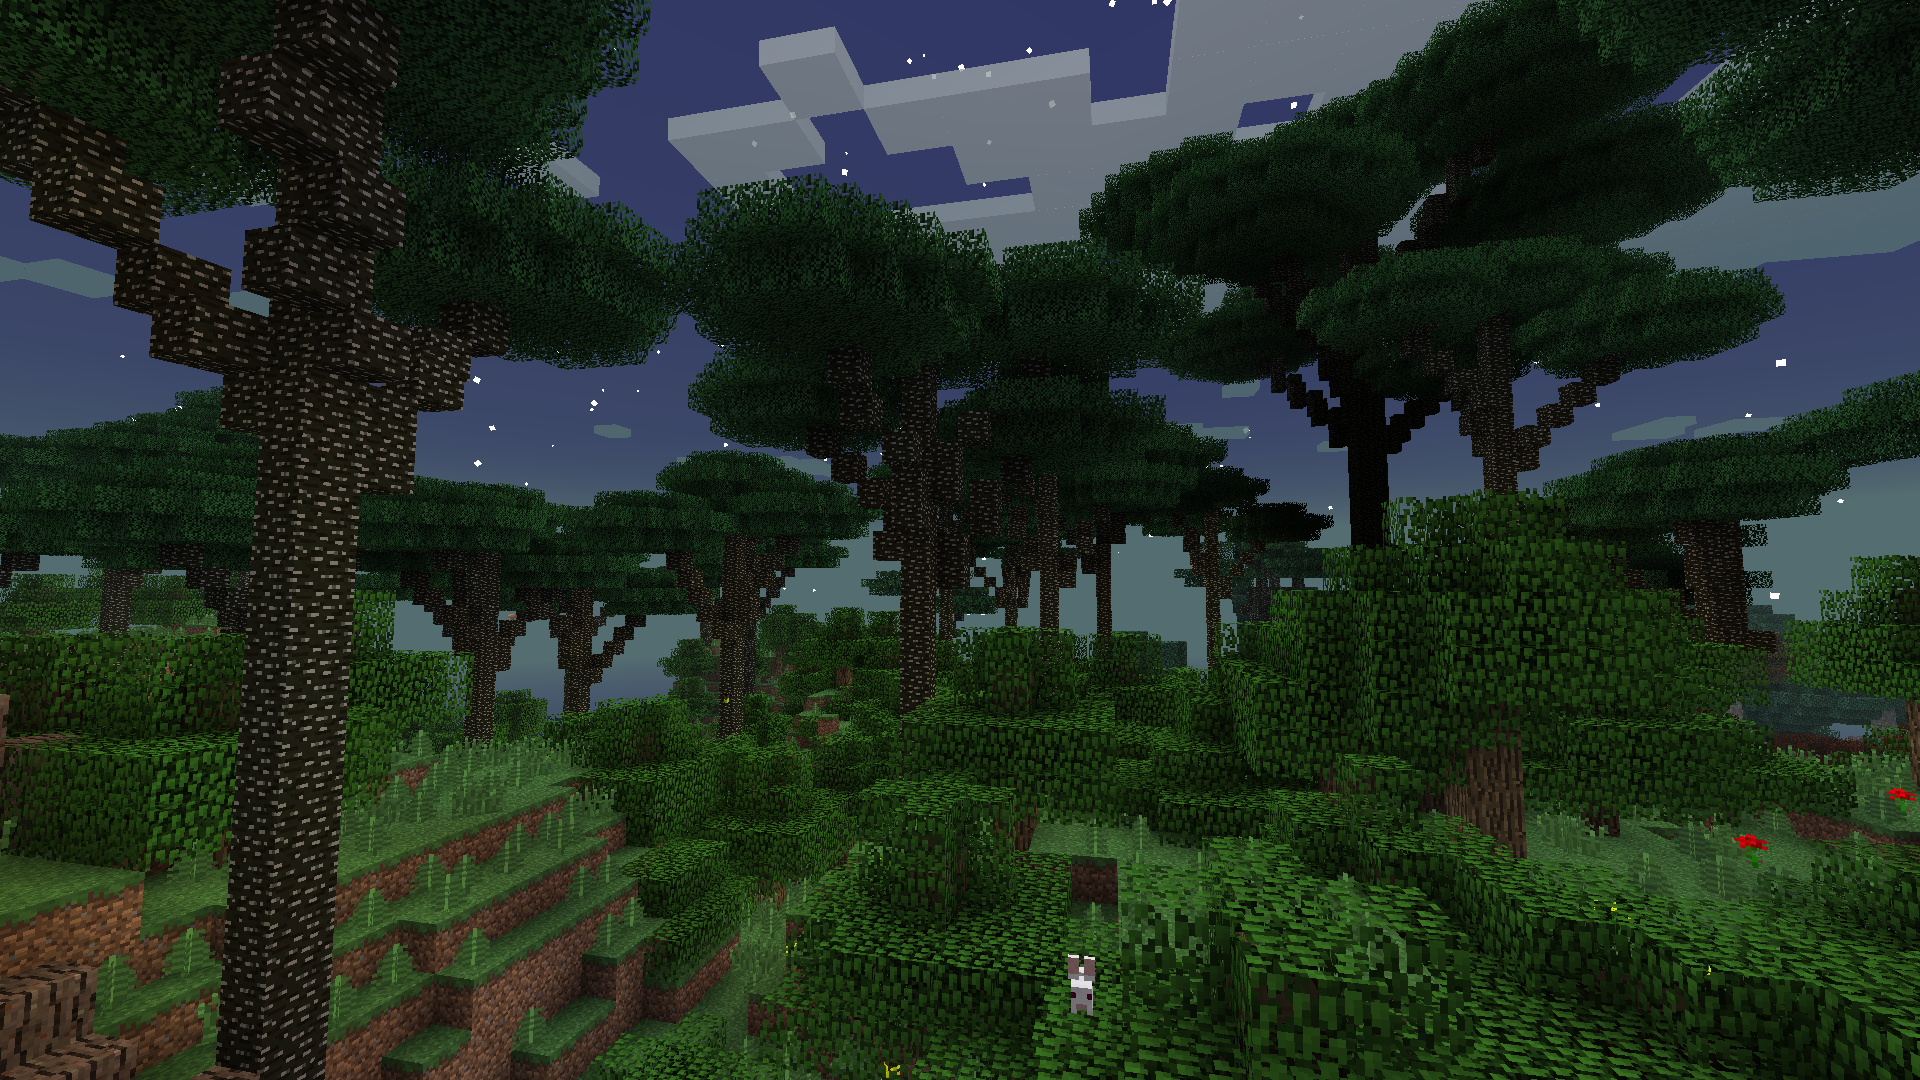 Popular Wallpaper Minecraft Forest - latest?cb\u003d20130214161154  Perfect Image Reference_4590100.png/revision/latest?cb\u003d20130214161154